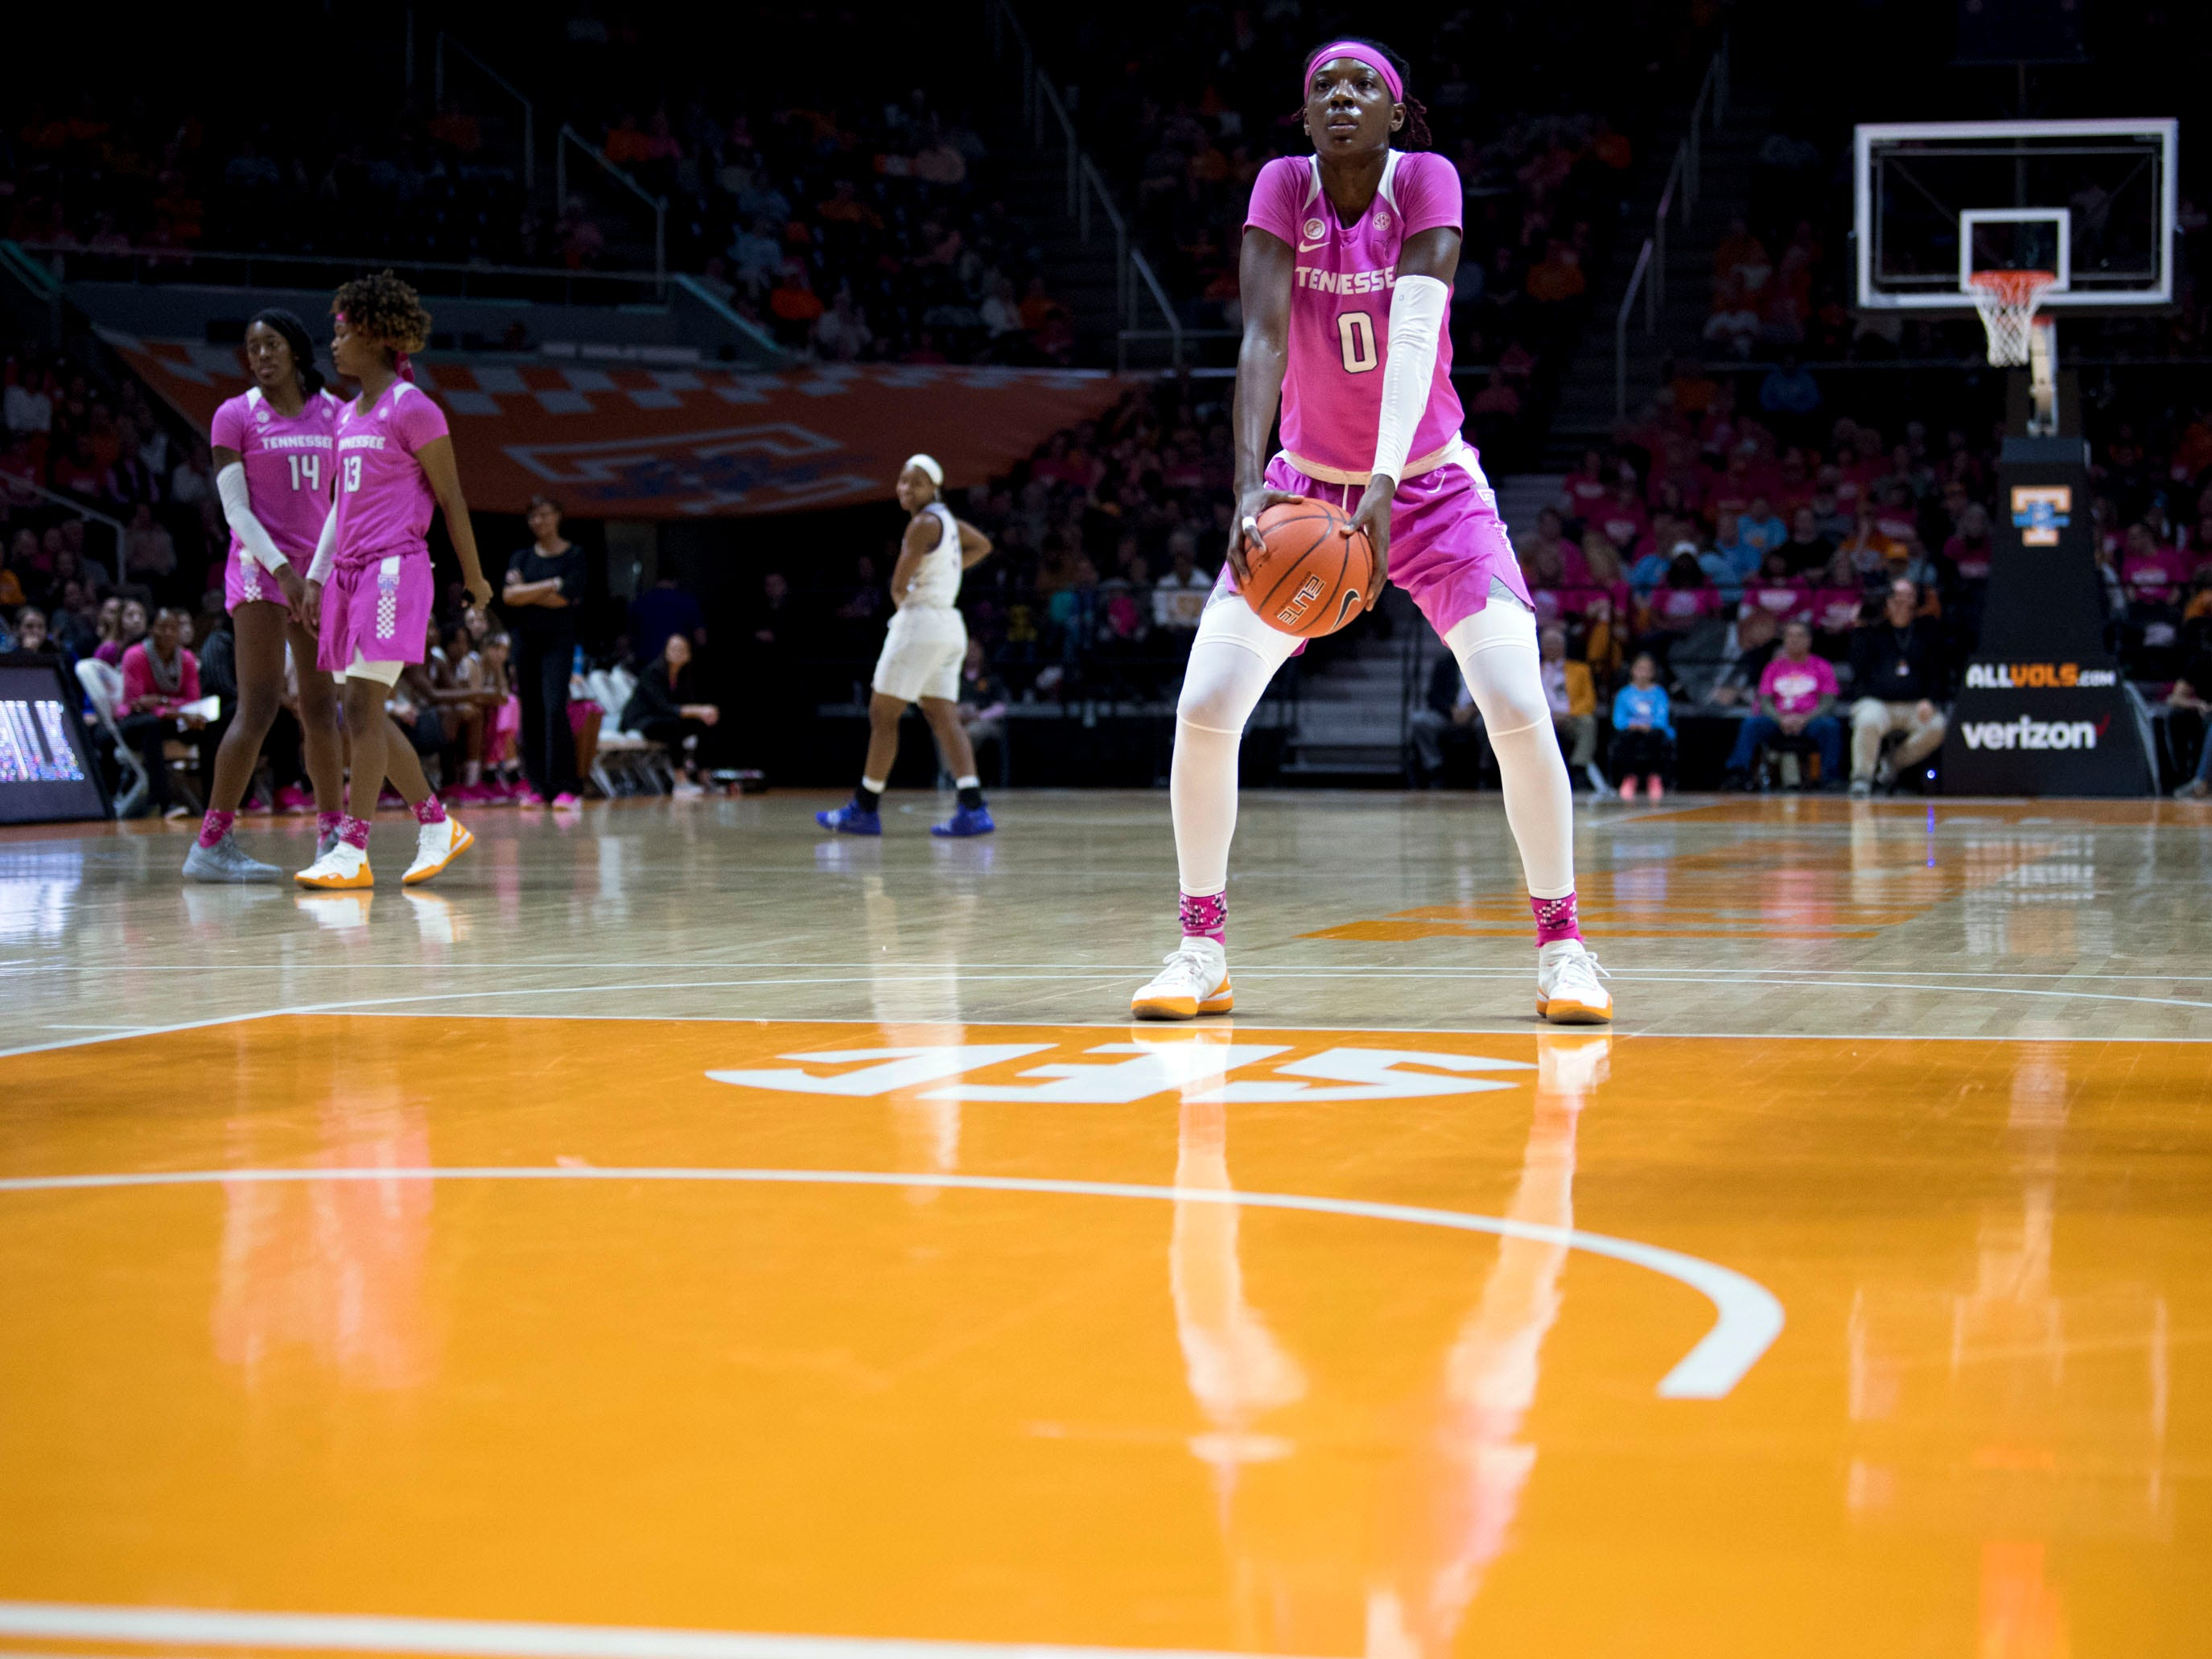 Tennessee's Rennia Davis (0) at the free-throw line in game against LSU on Sunday, January 27, 2019.